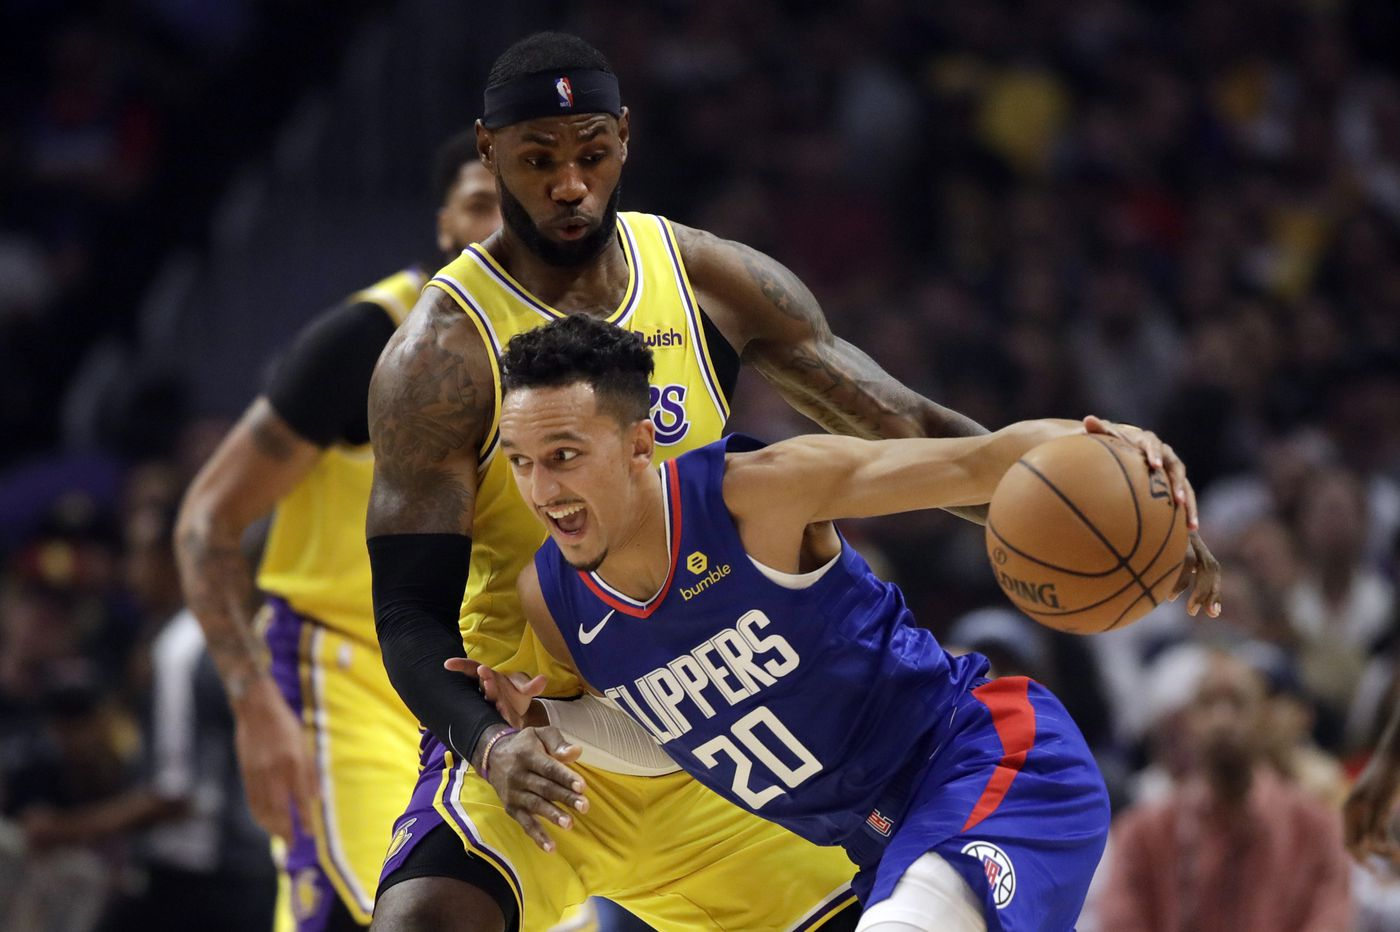 Former Sixers guard Landry Shamet, initially angry at being traded, has settled in with Los Angeles Clippers